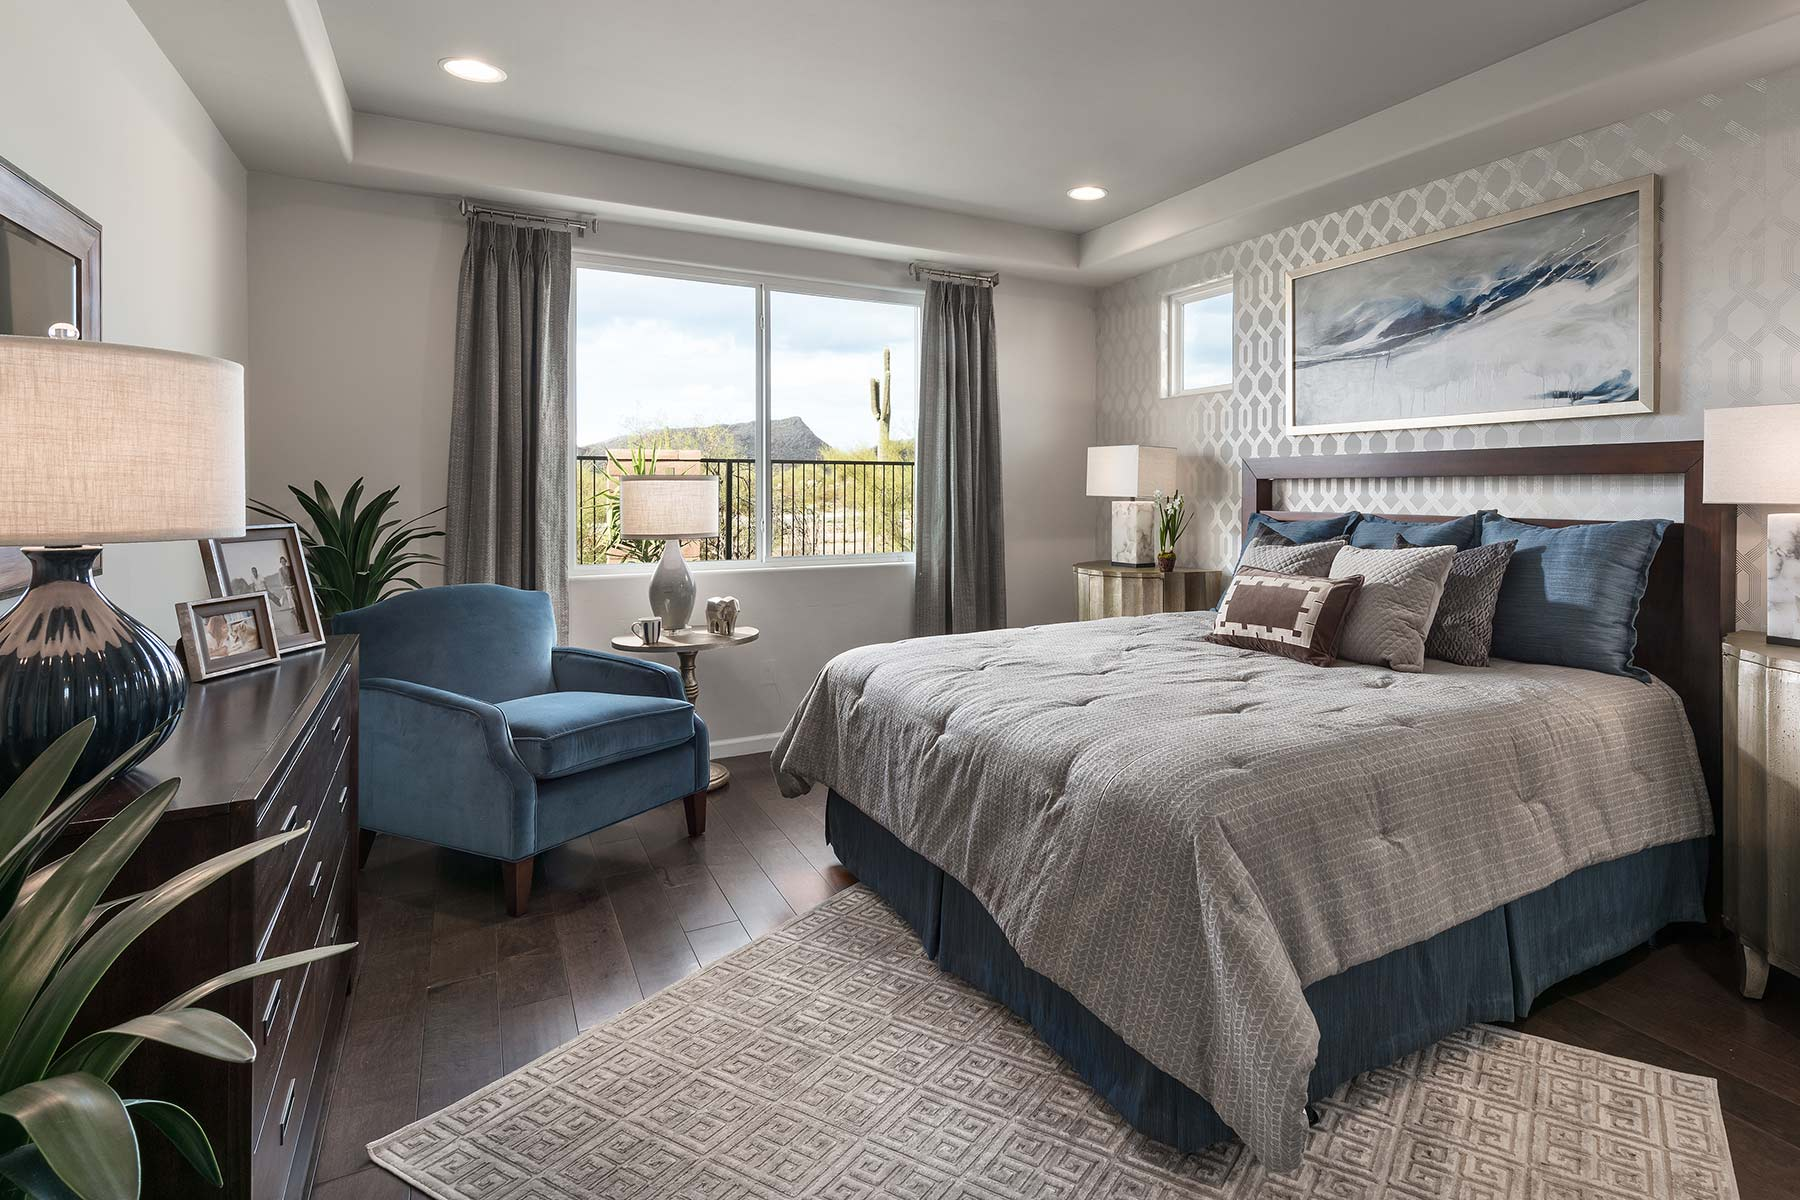 Sycamore Plan Bedroom at Dove Mountain in Marana Arizona by Mattamy Homes